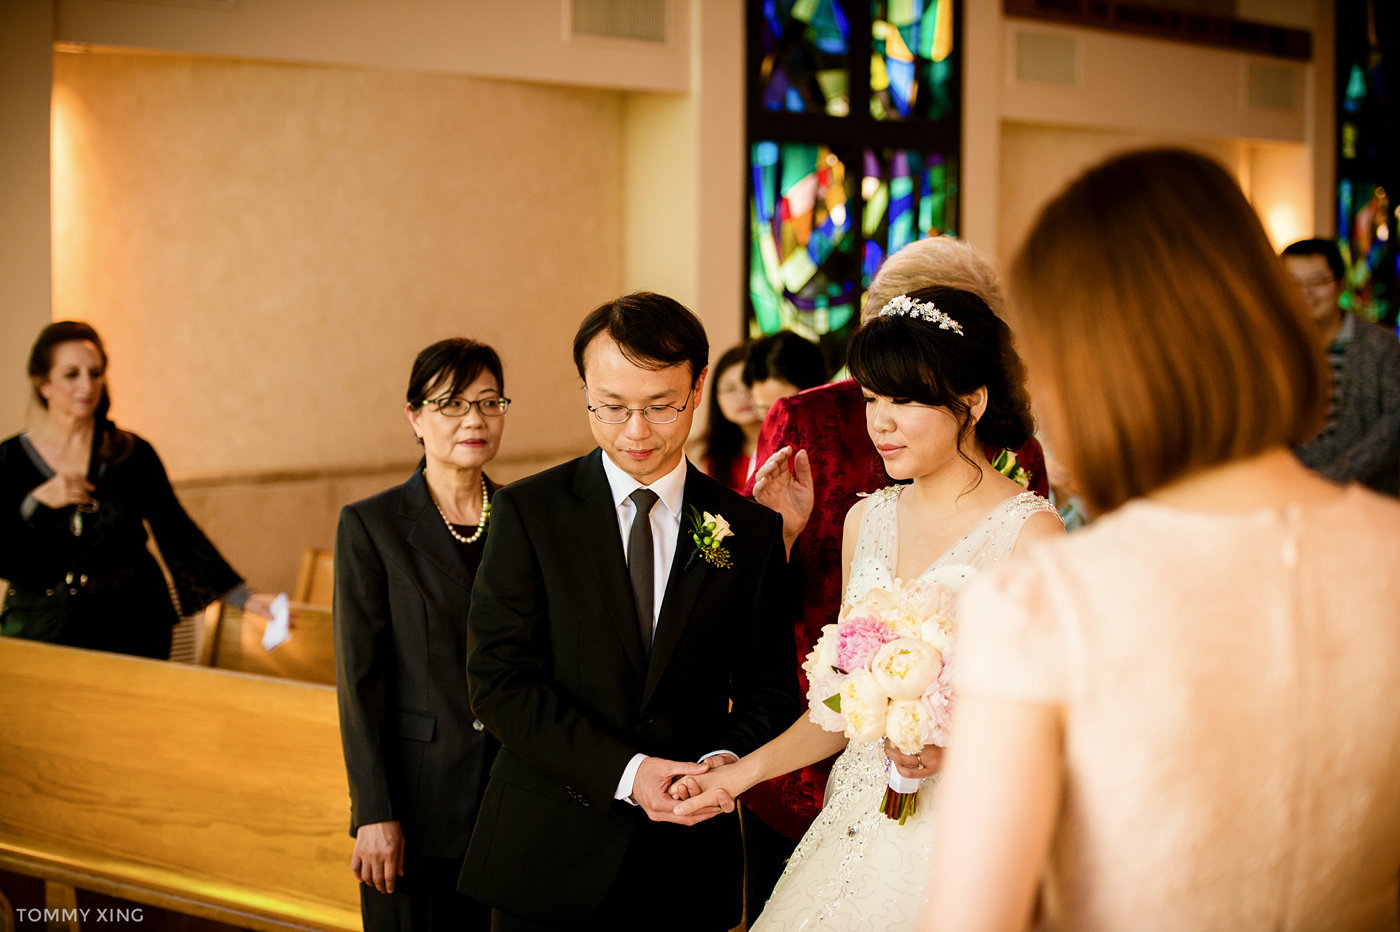 Qinglu Meng & Daozheng Chen Wedding Slideshow-119-E.JPG